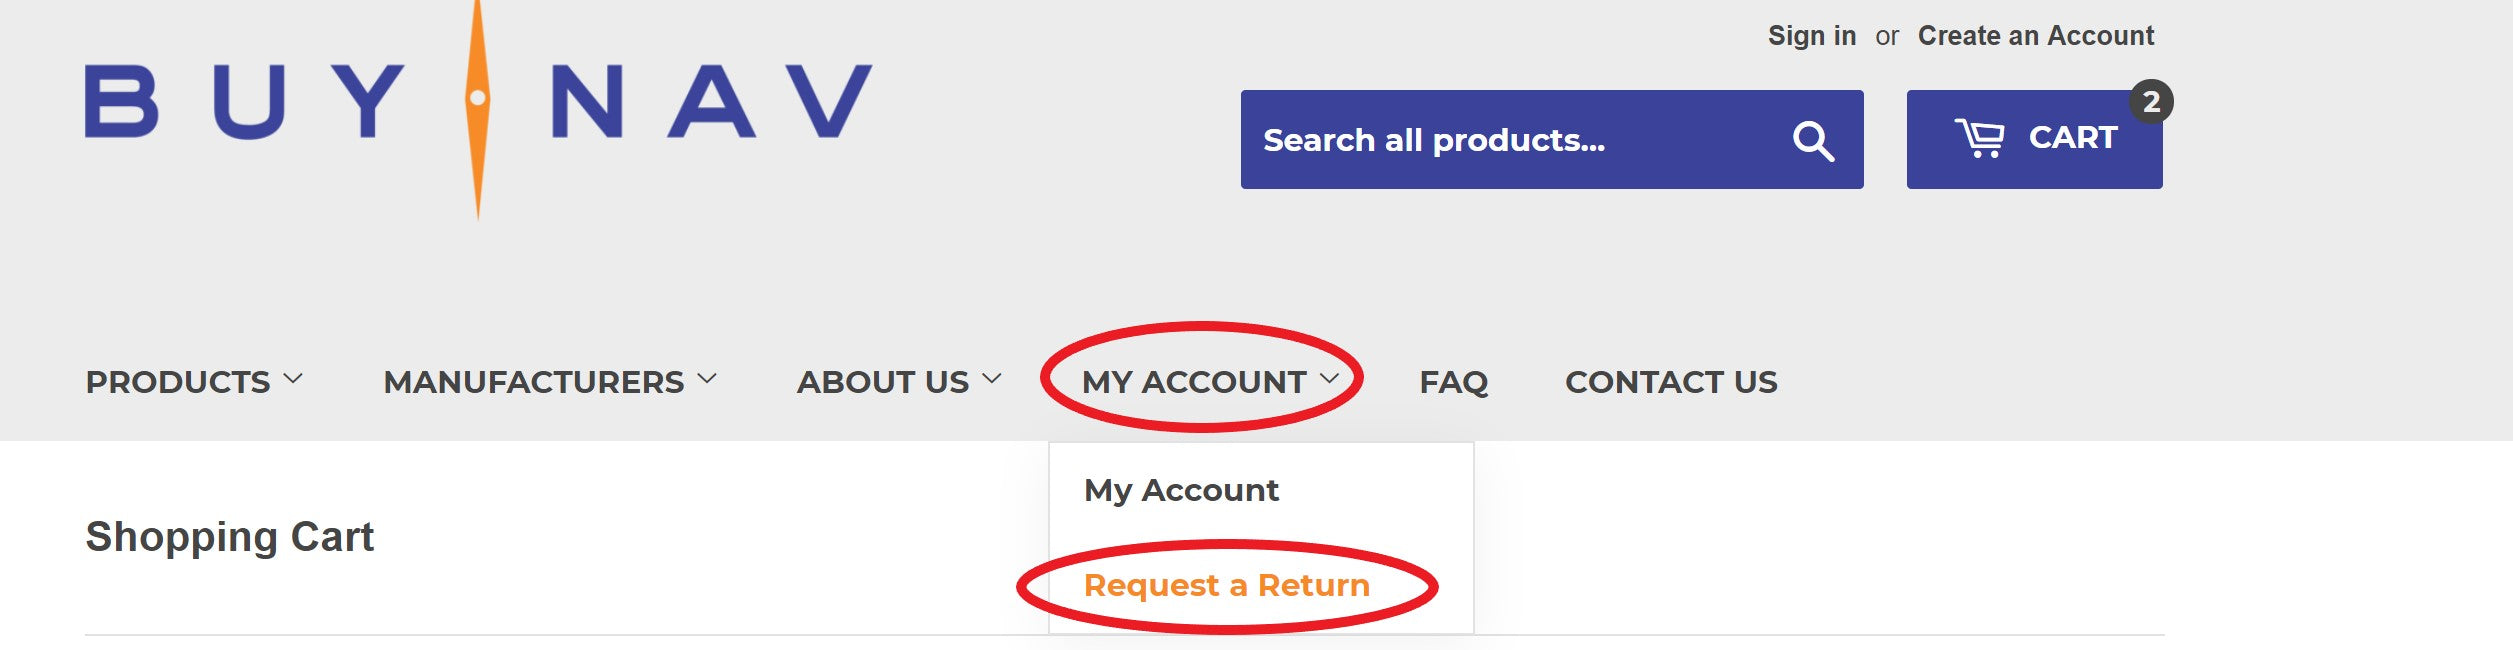 Request a Return